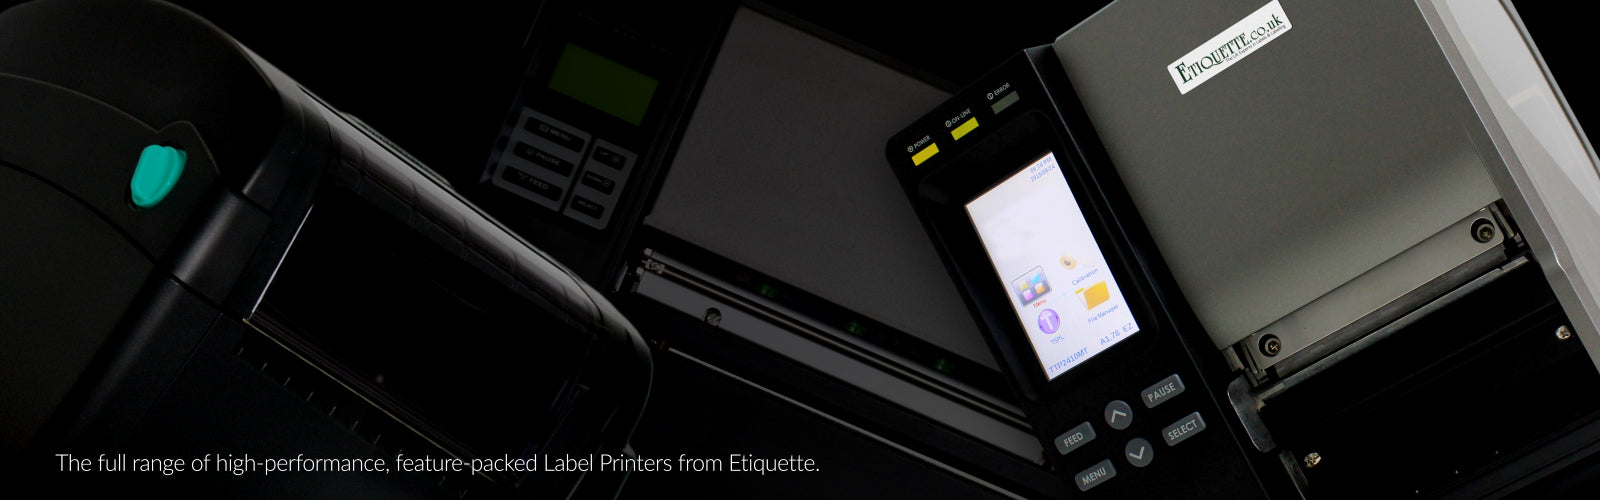 The range of Label Printers from Etiquette